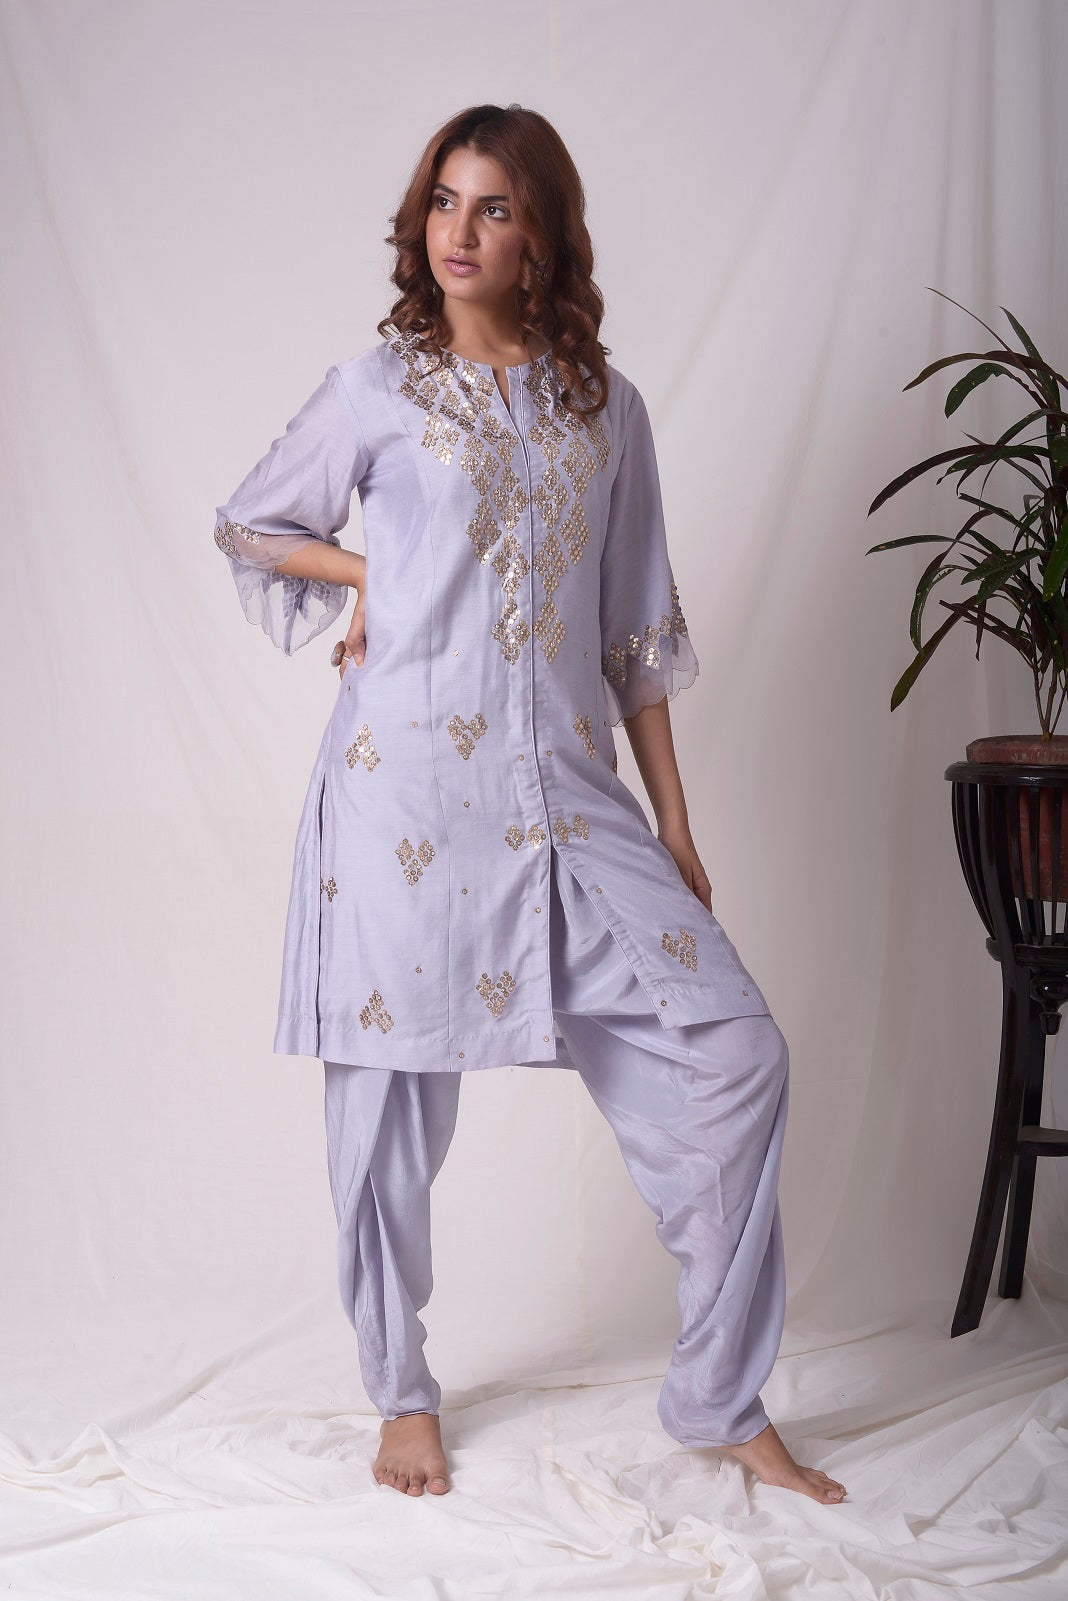 Buy lavender embroidered chanderi suit online in USA. Suit has simple golden work. Kurta has 3/4 length sleeves with net like at border, dhoti and rhombus neckline. Simple look makes it elegant. Be the talk of parties and weddings with exquisite designer gowns from Pure Elegance Indian clothing store in USA. Shop online now.-full view-5